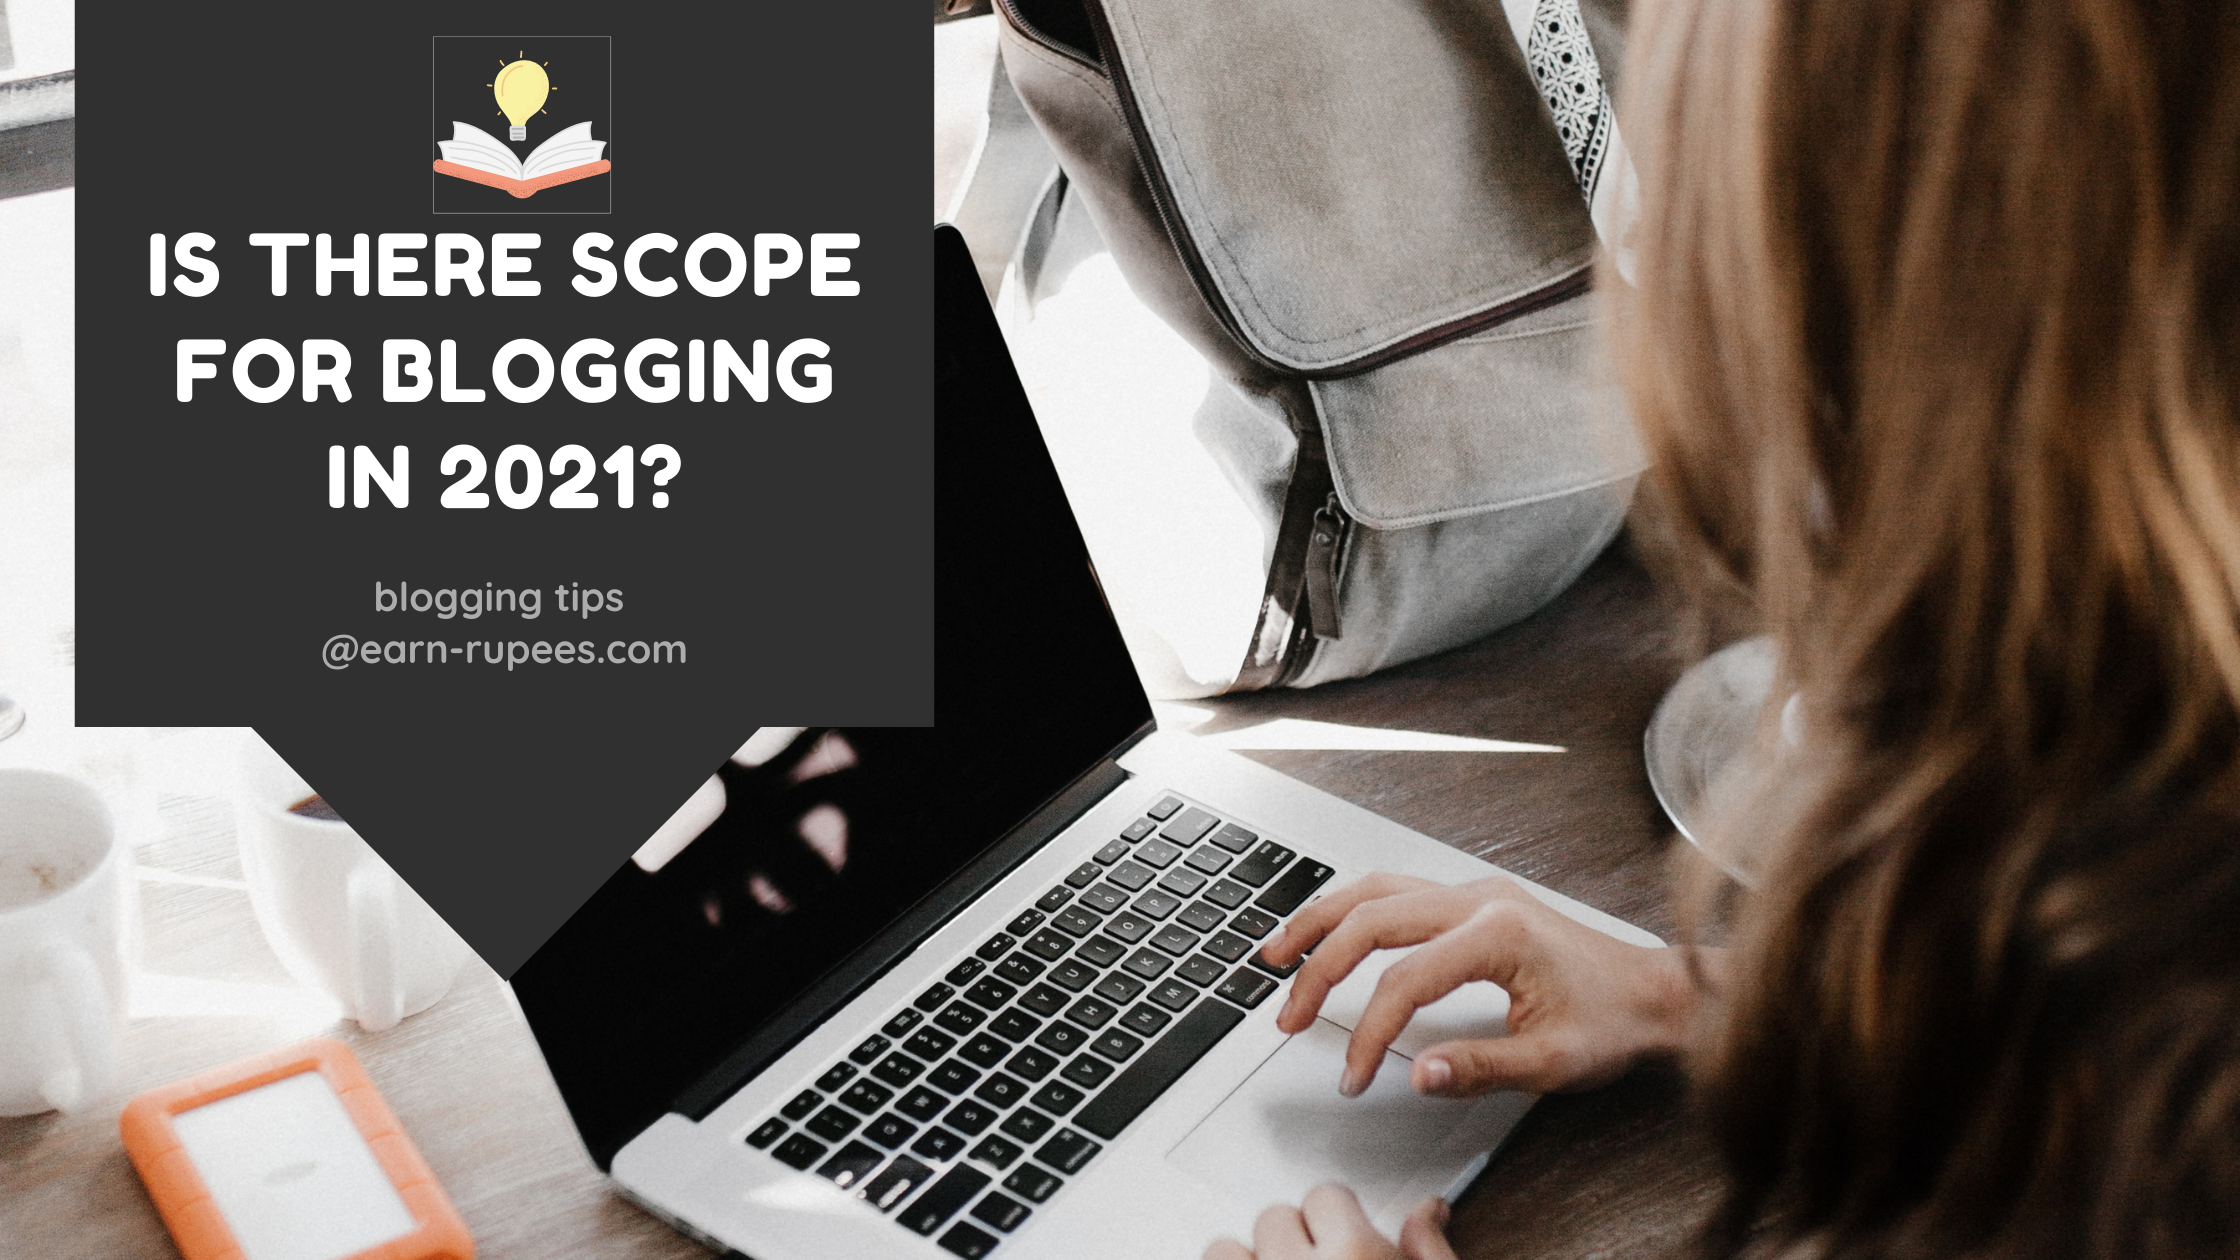 Is There Scope For Blogging in 2021